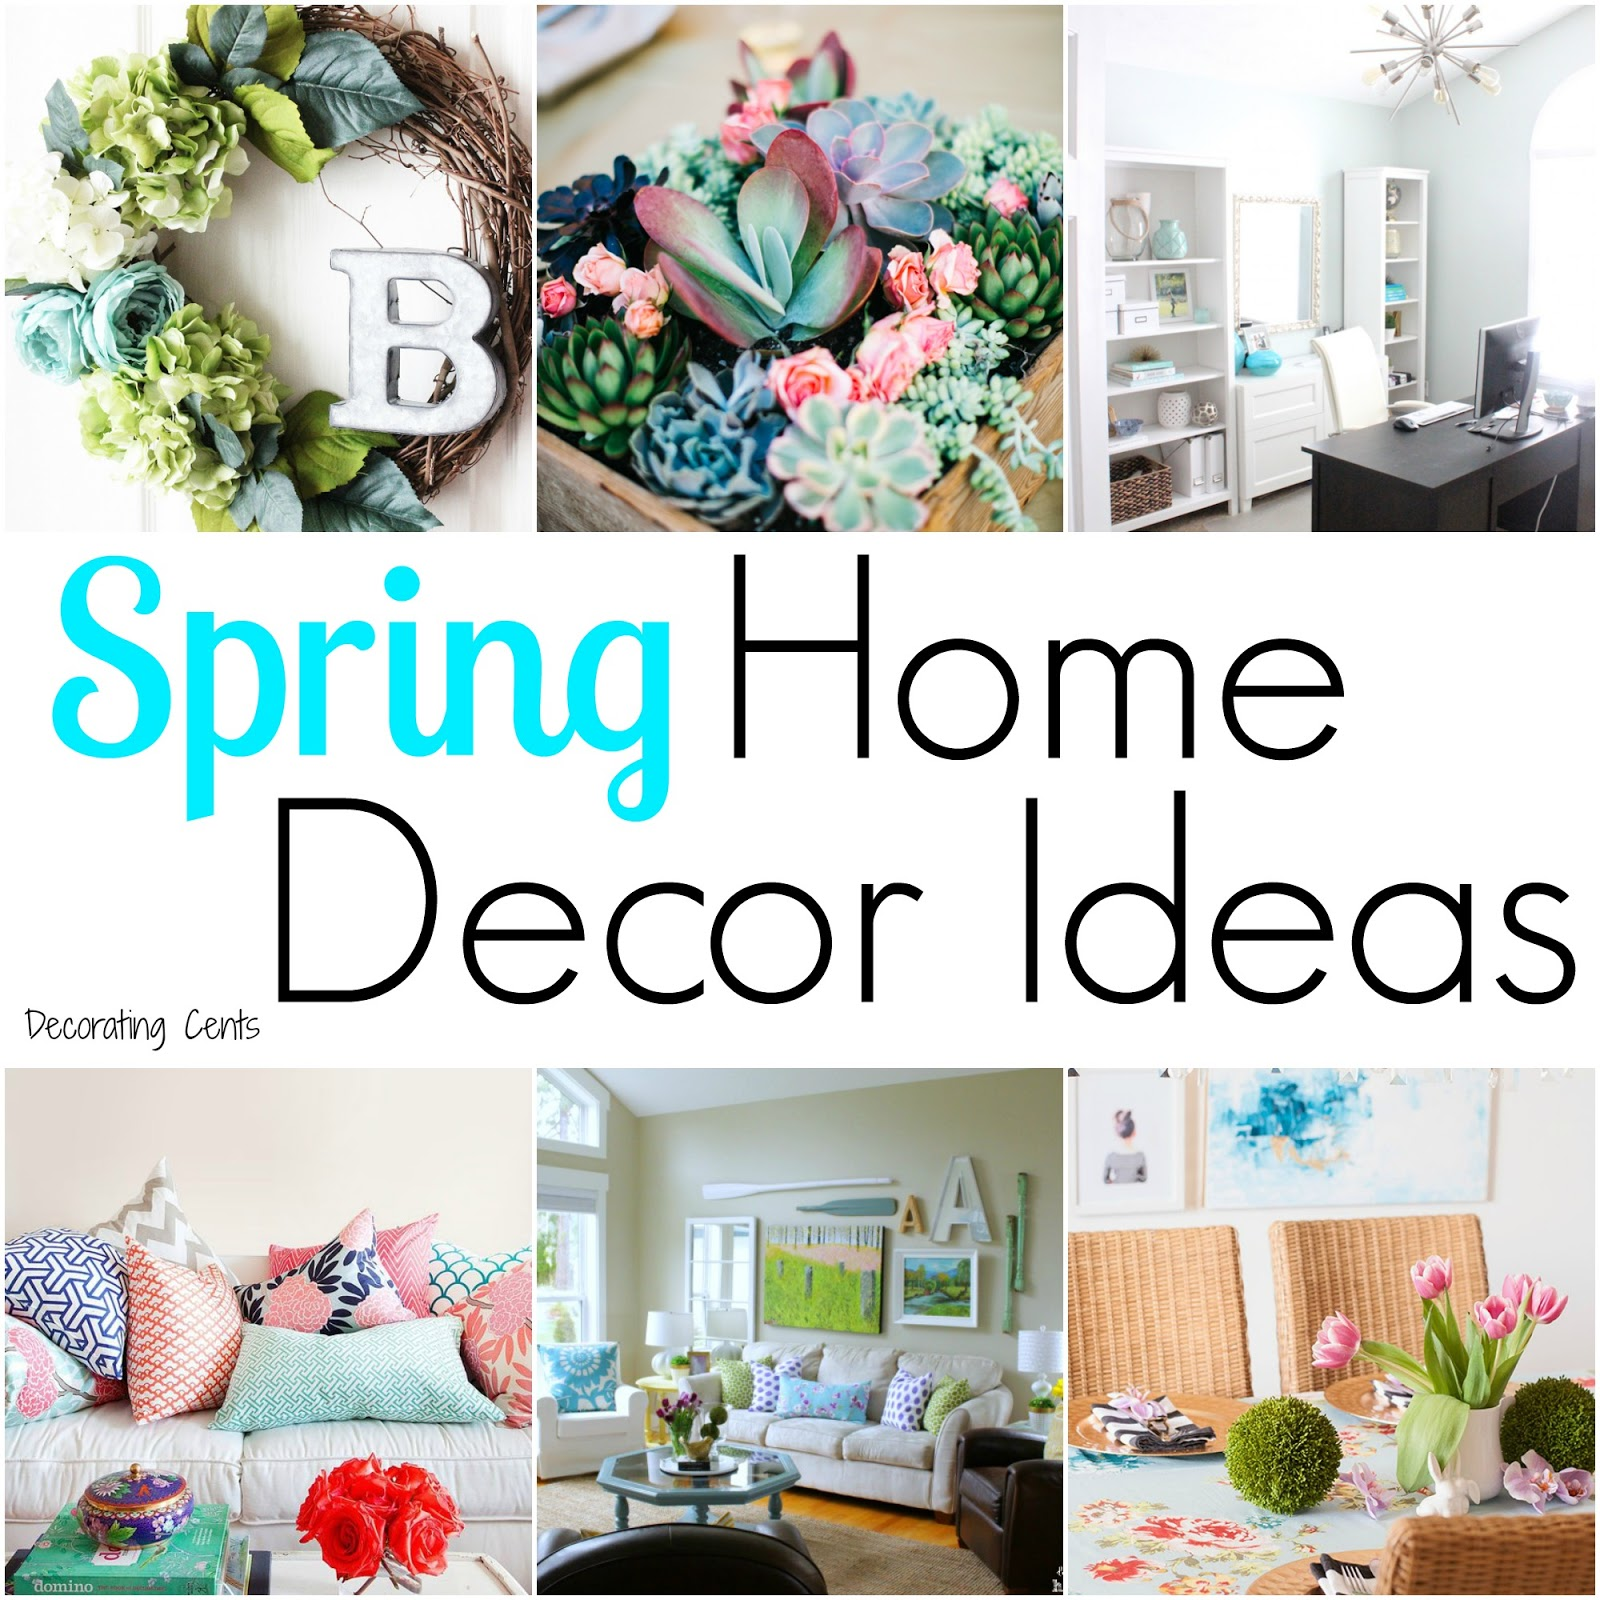 Home Decor Ideas Spring Home Decor Ideas